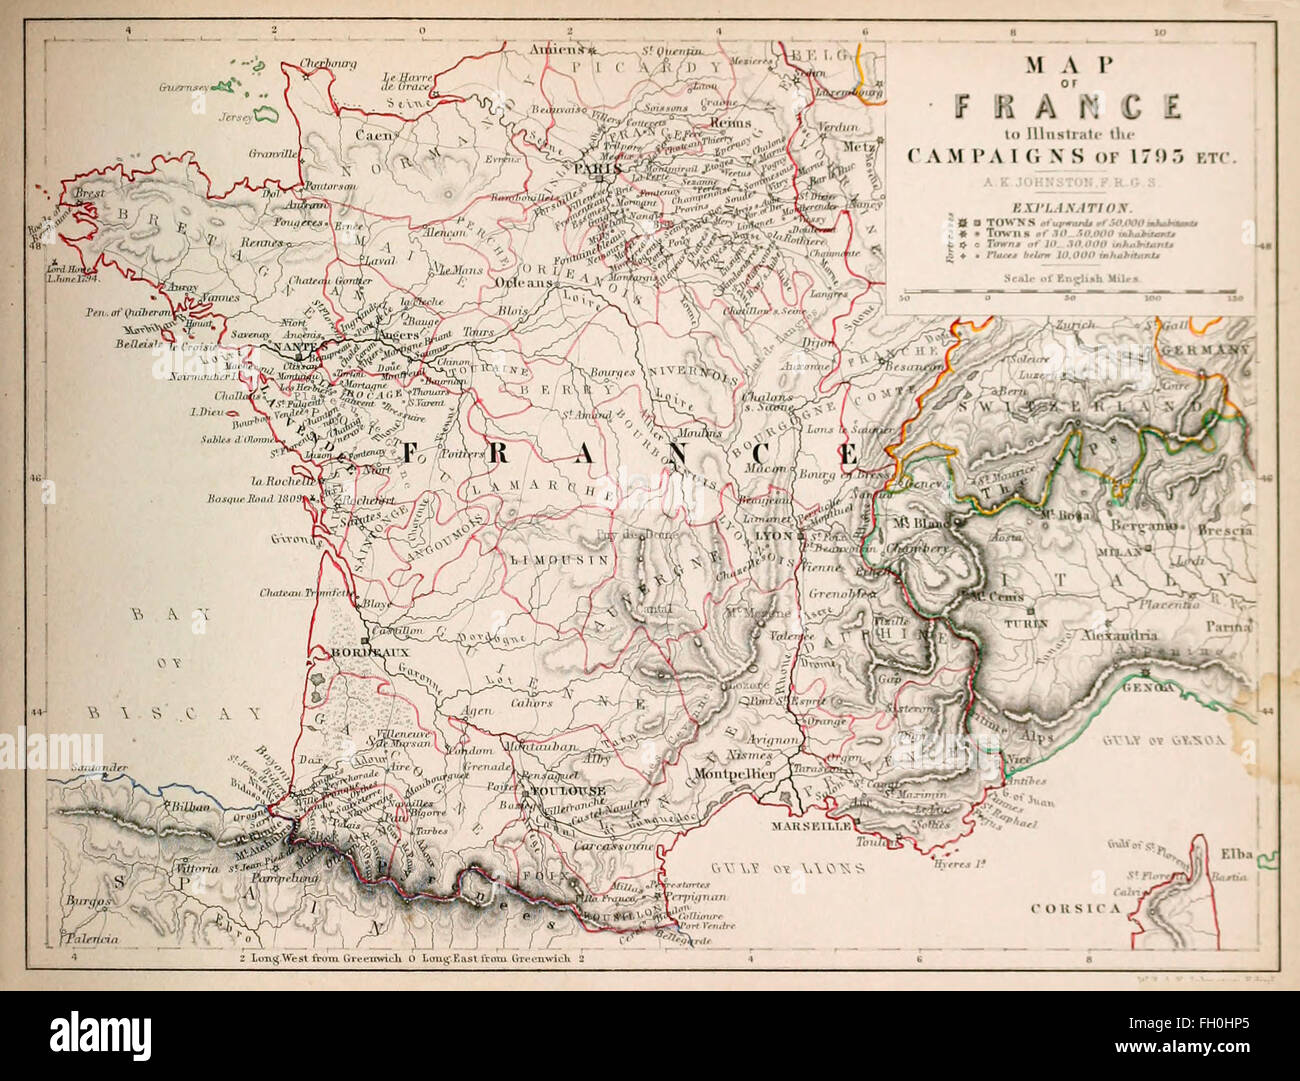 Map of France to illustrate the Campaigns of 1795 - Stock Image